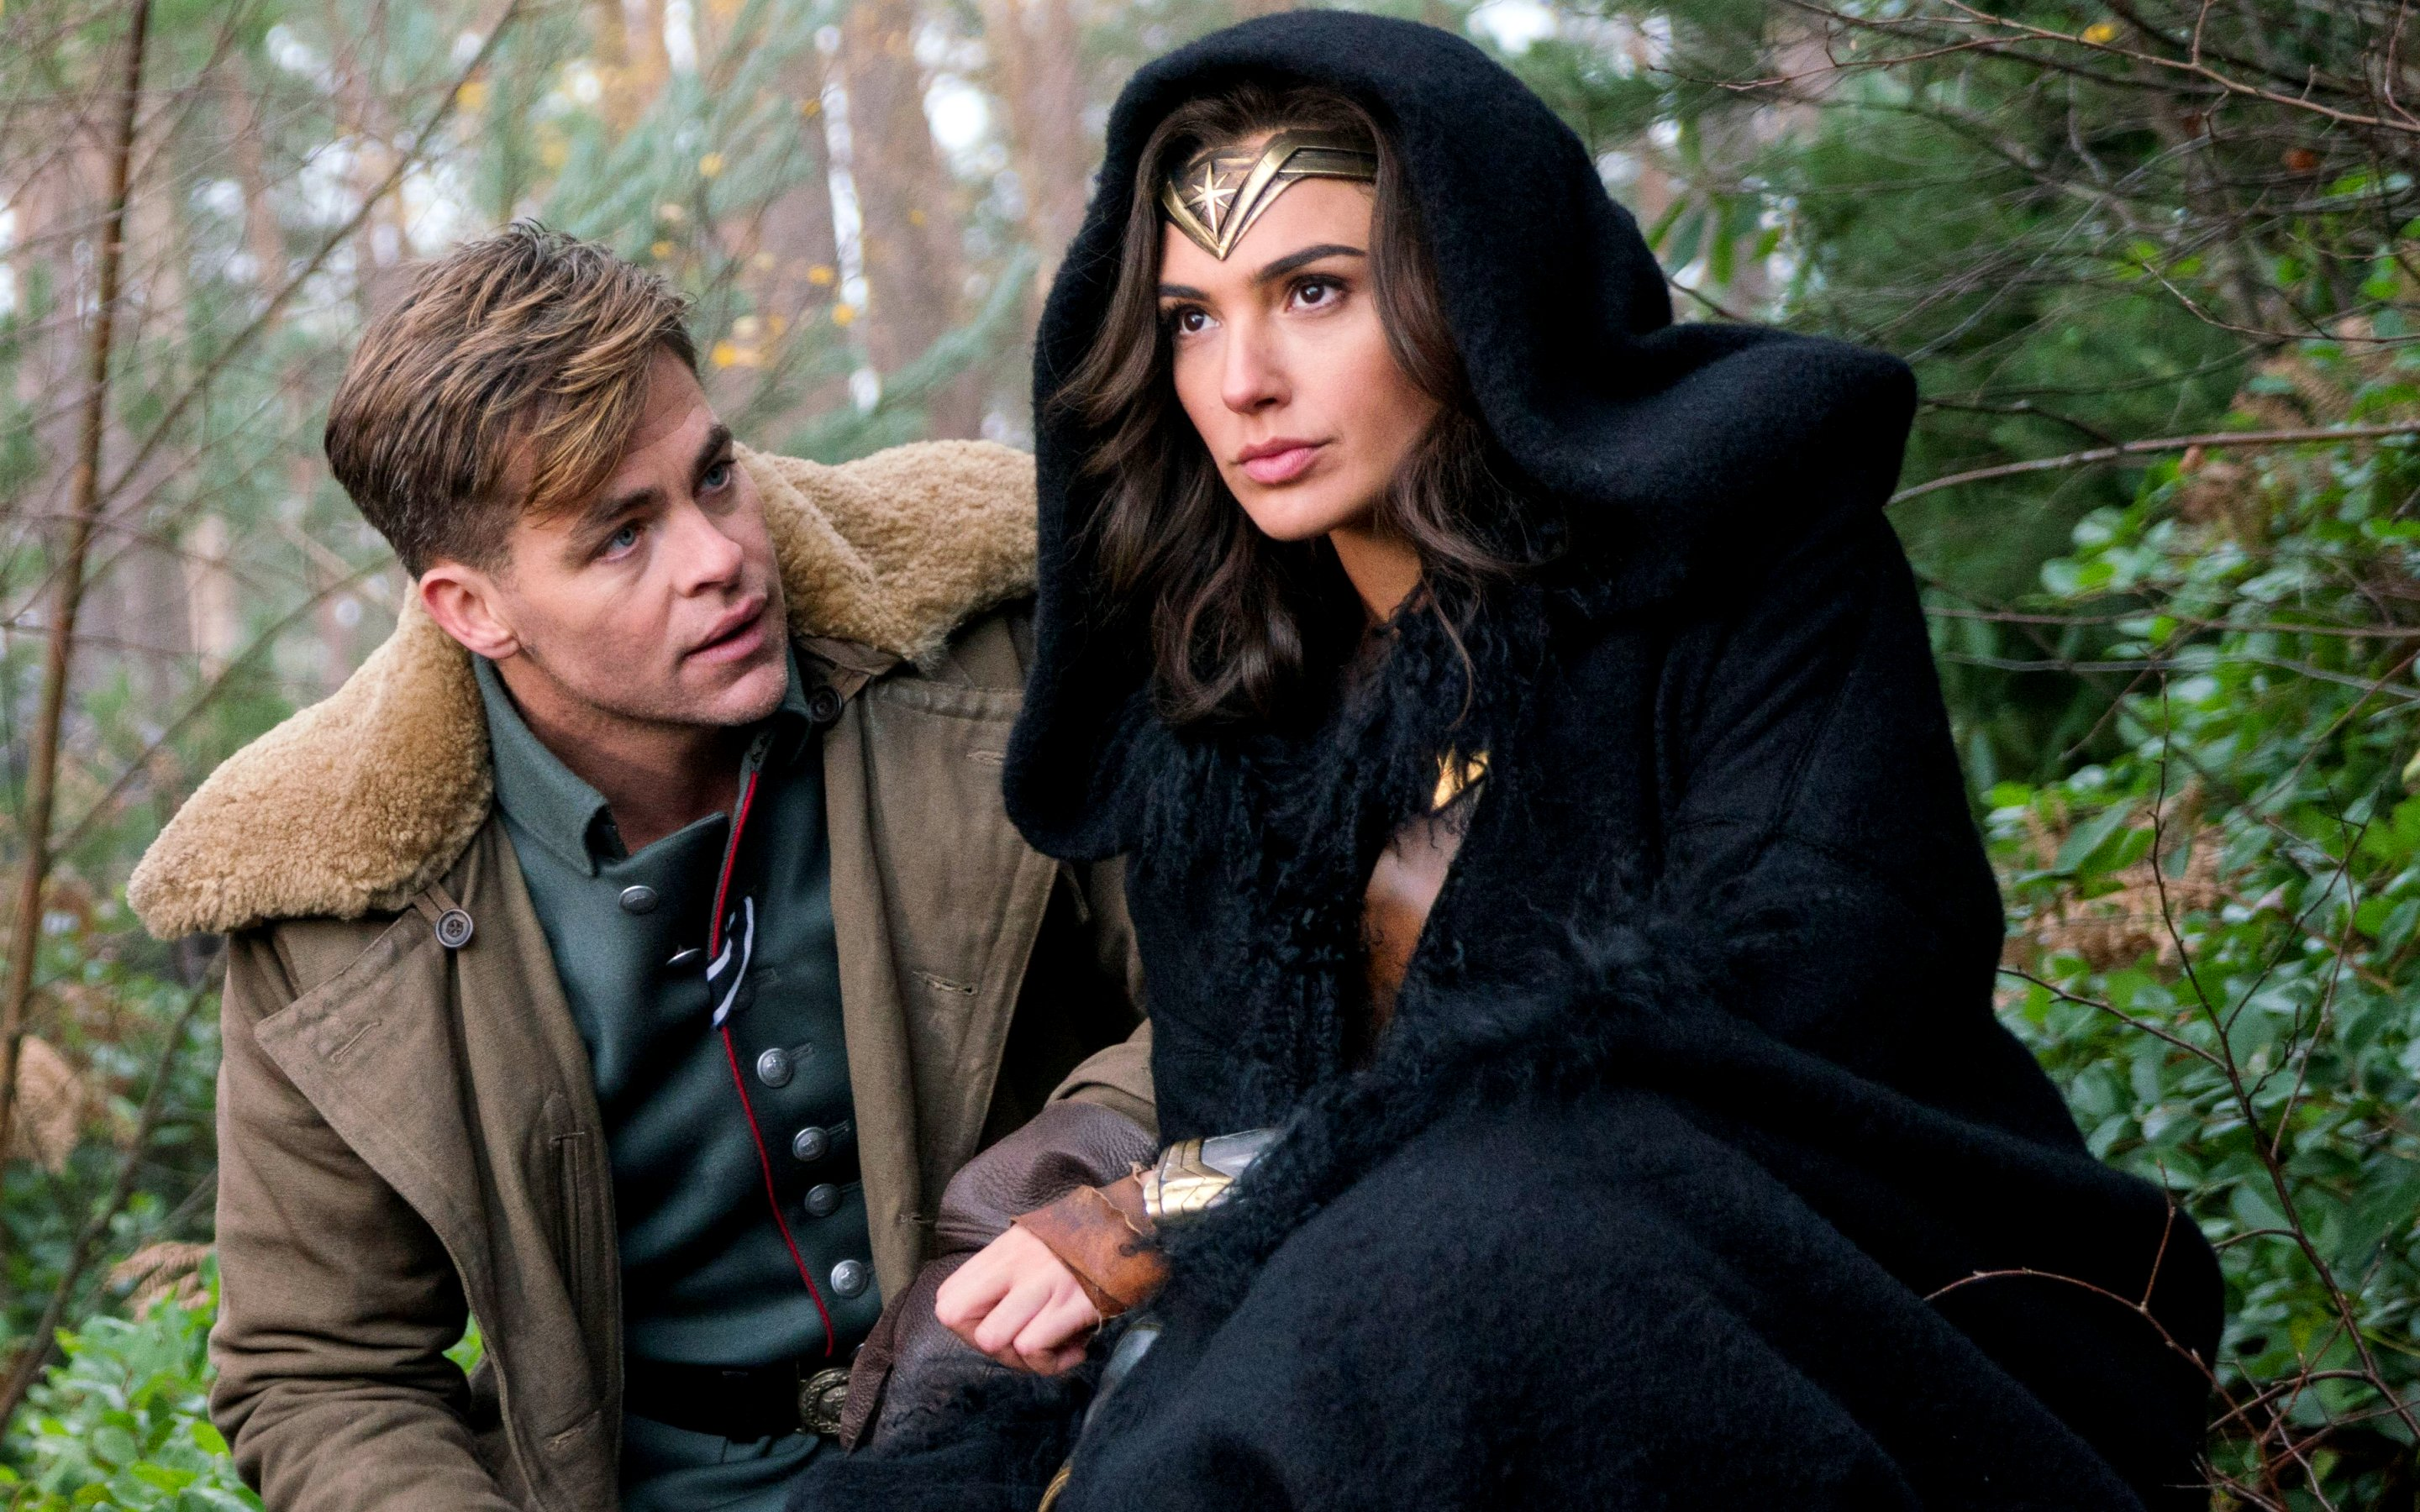 Wonder Woman (Gal Gadot) and Steve Trevor (Chris Pine) were made for each other.